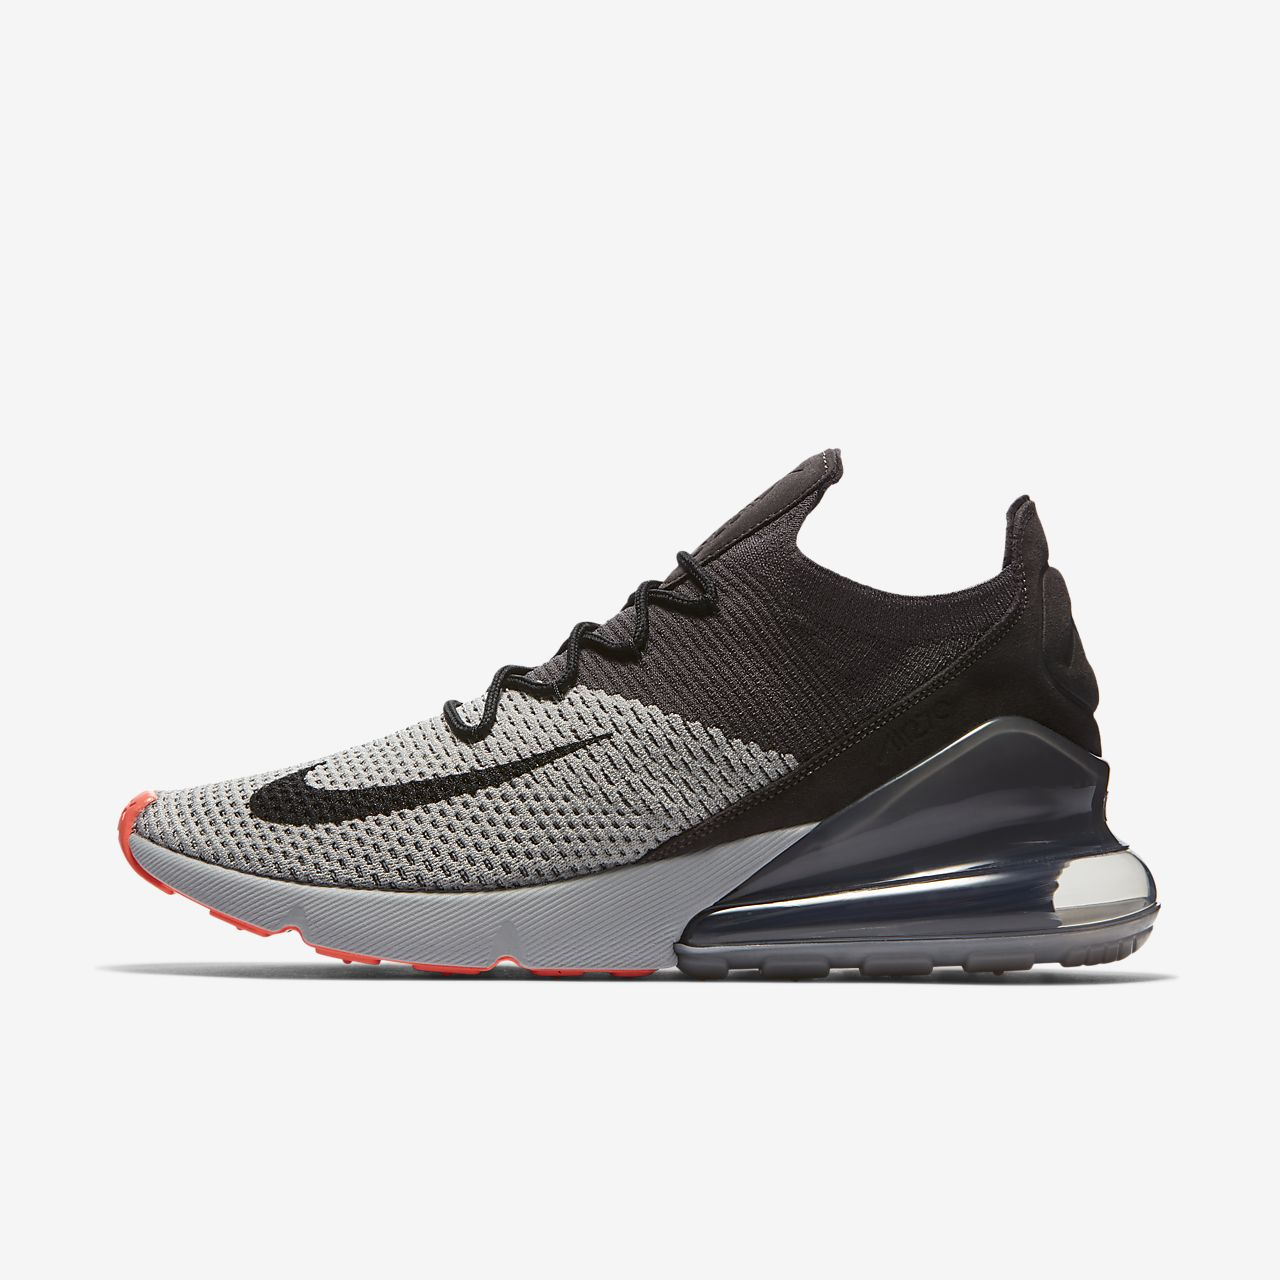 f46aa696d31 Nike Air Max 270 Flyknit Men s Shoe. Nike.com GB